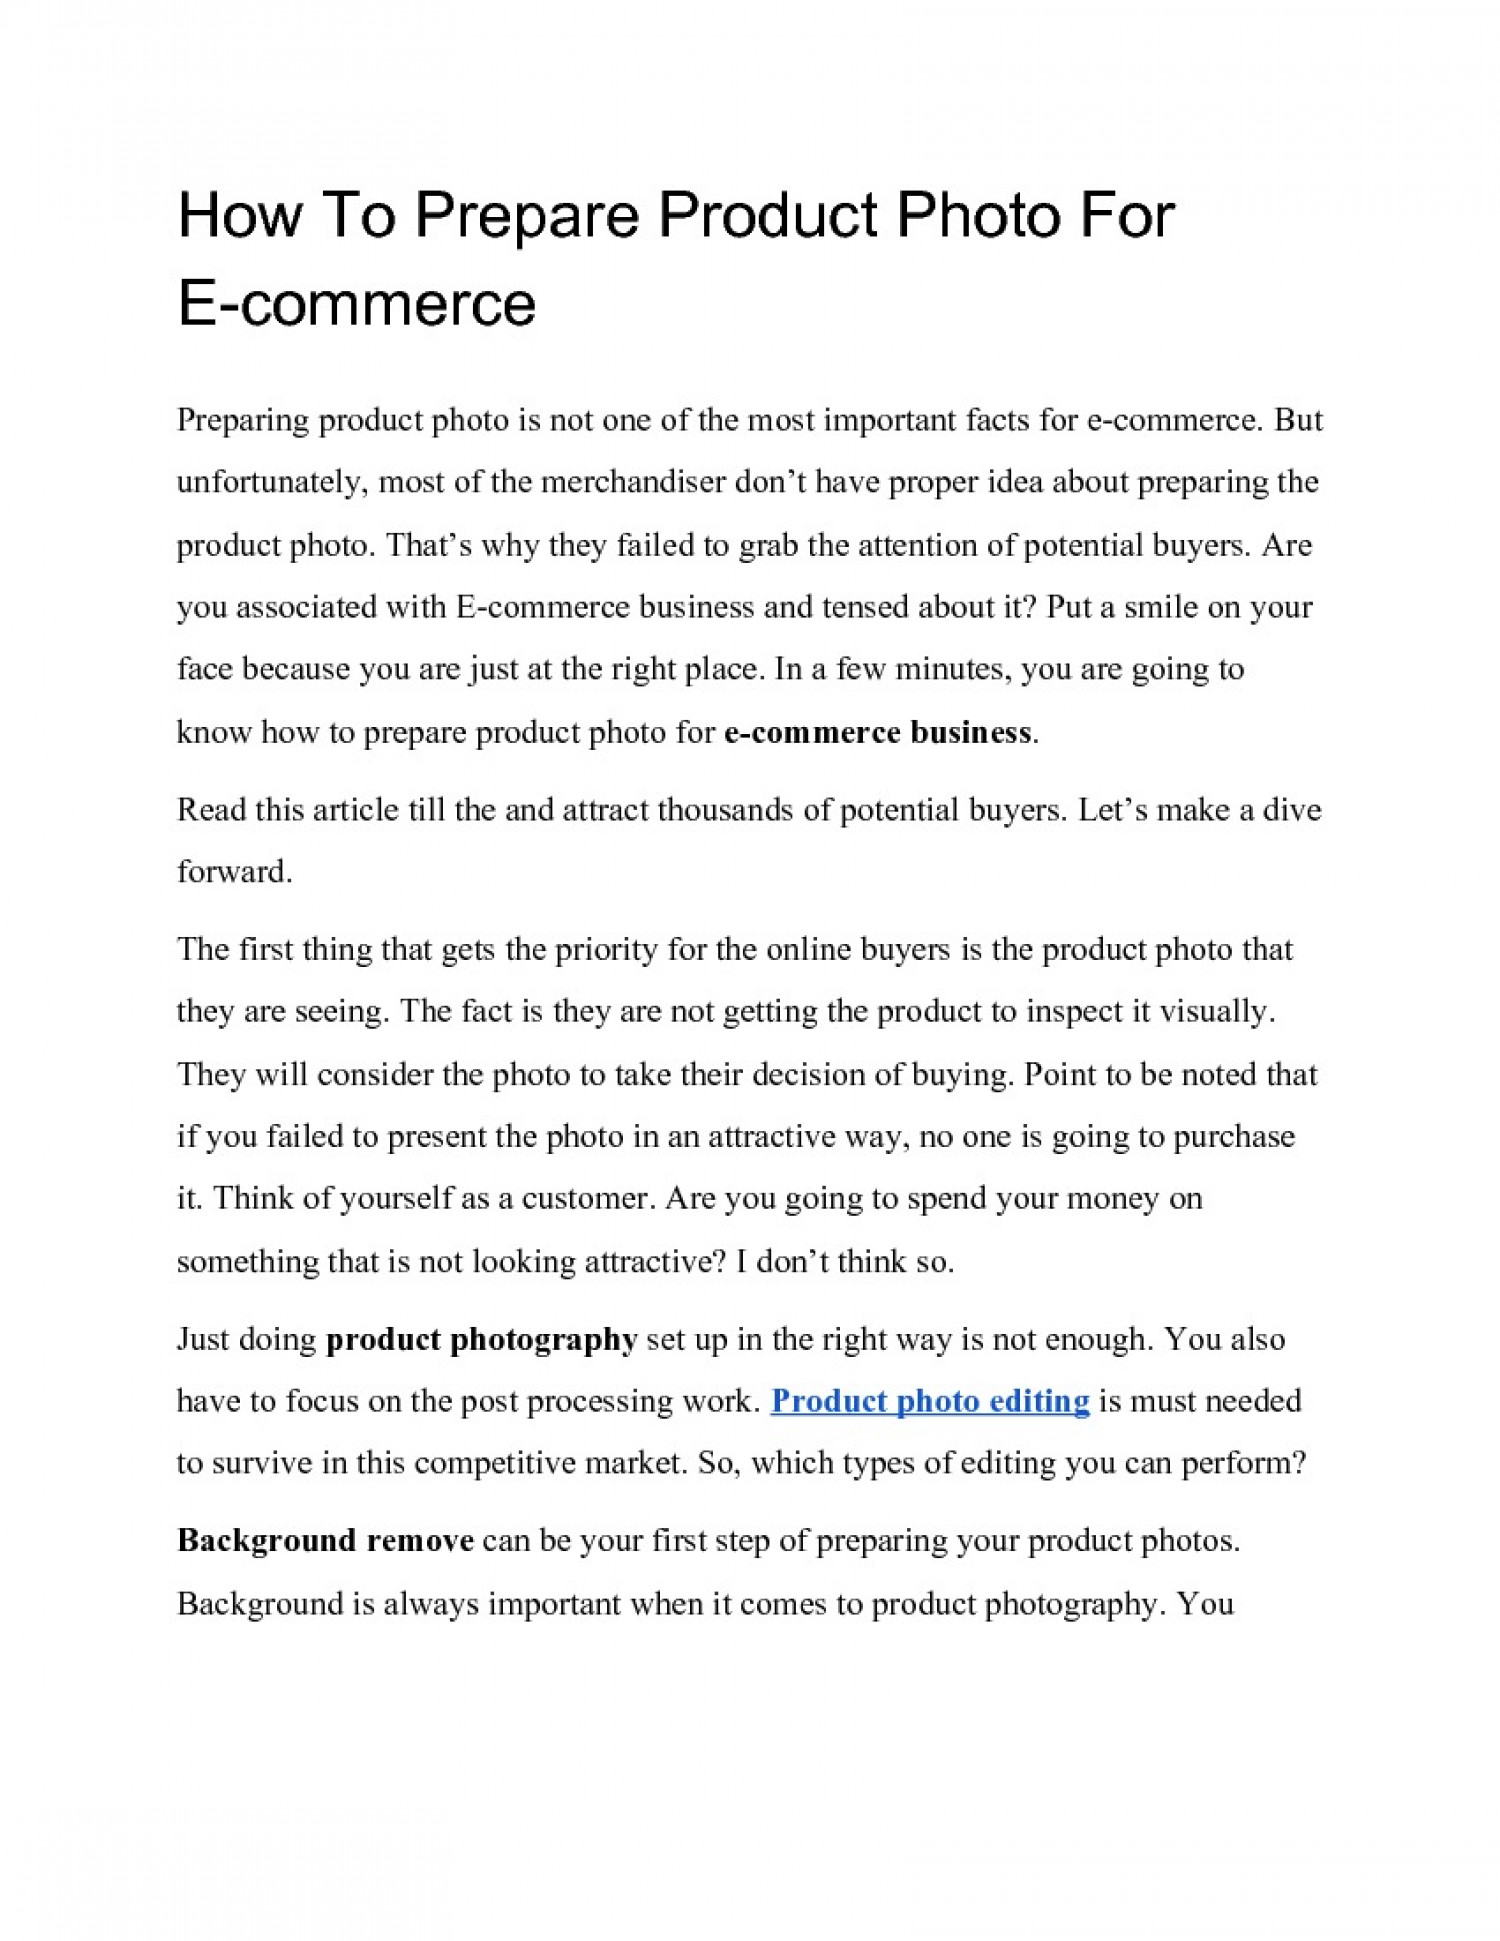 How To Prepare Product Photo Editing in Photoshop For E-commerce Infographic